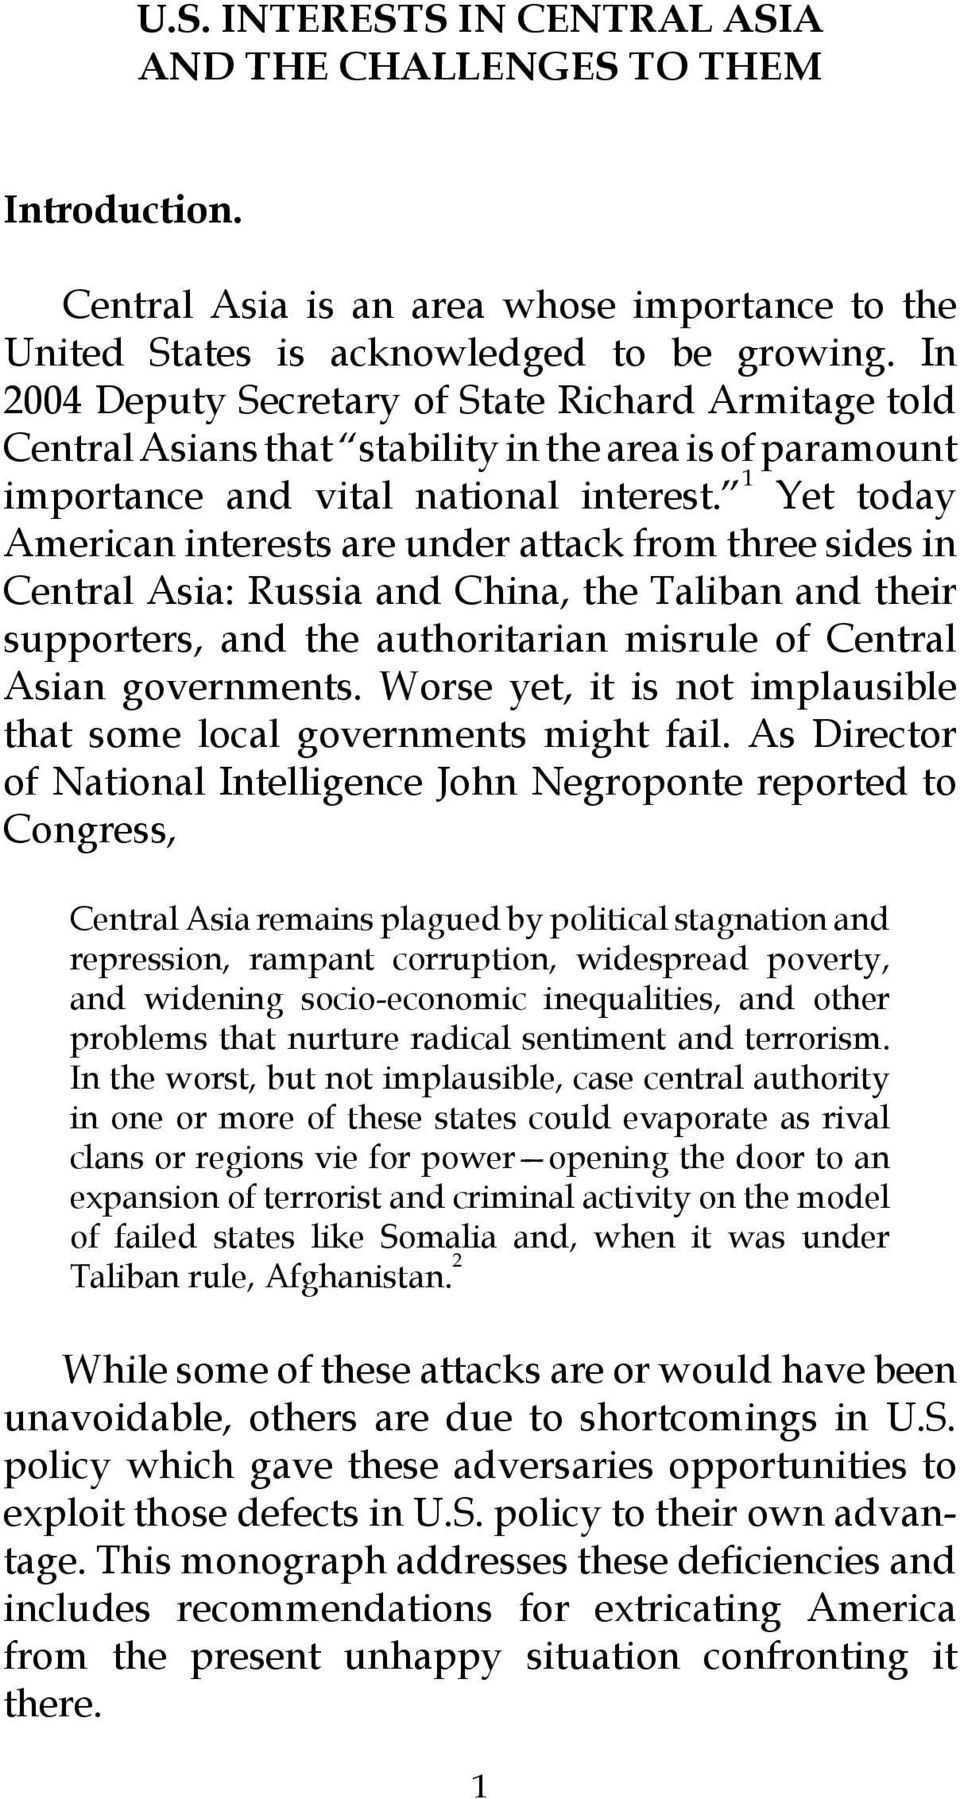 1 Yet today American interests are under attack from three sides in Central Asia: Russia and China, the Taliban and their supporters, and the authoritarian misrule of Central Asian governments.